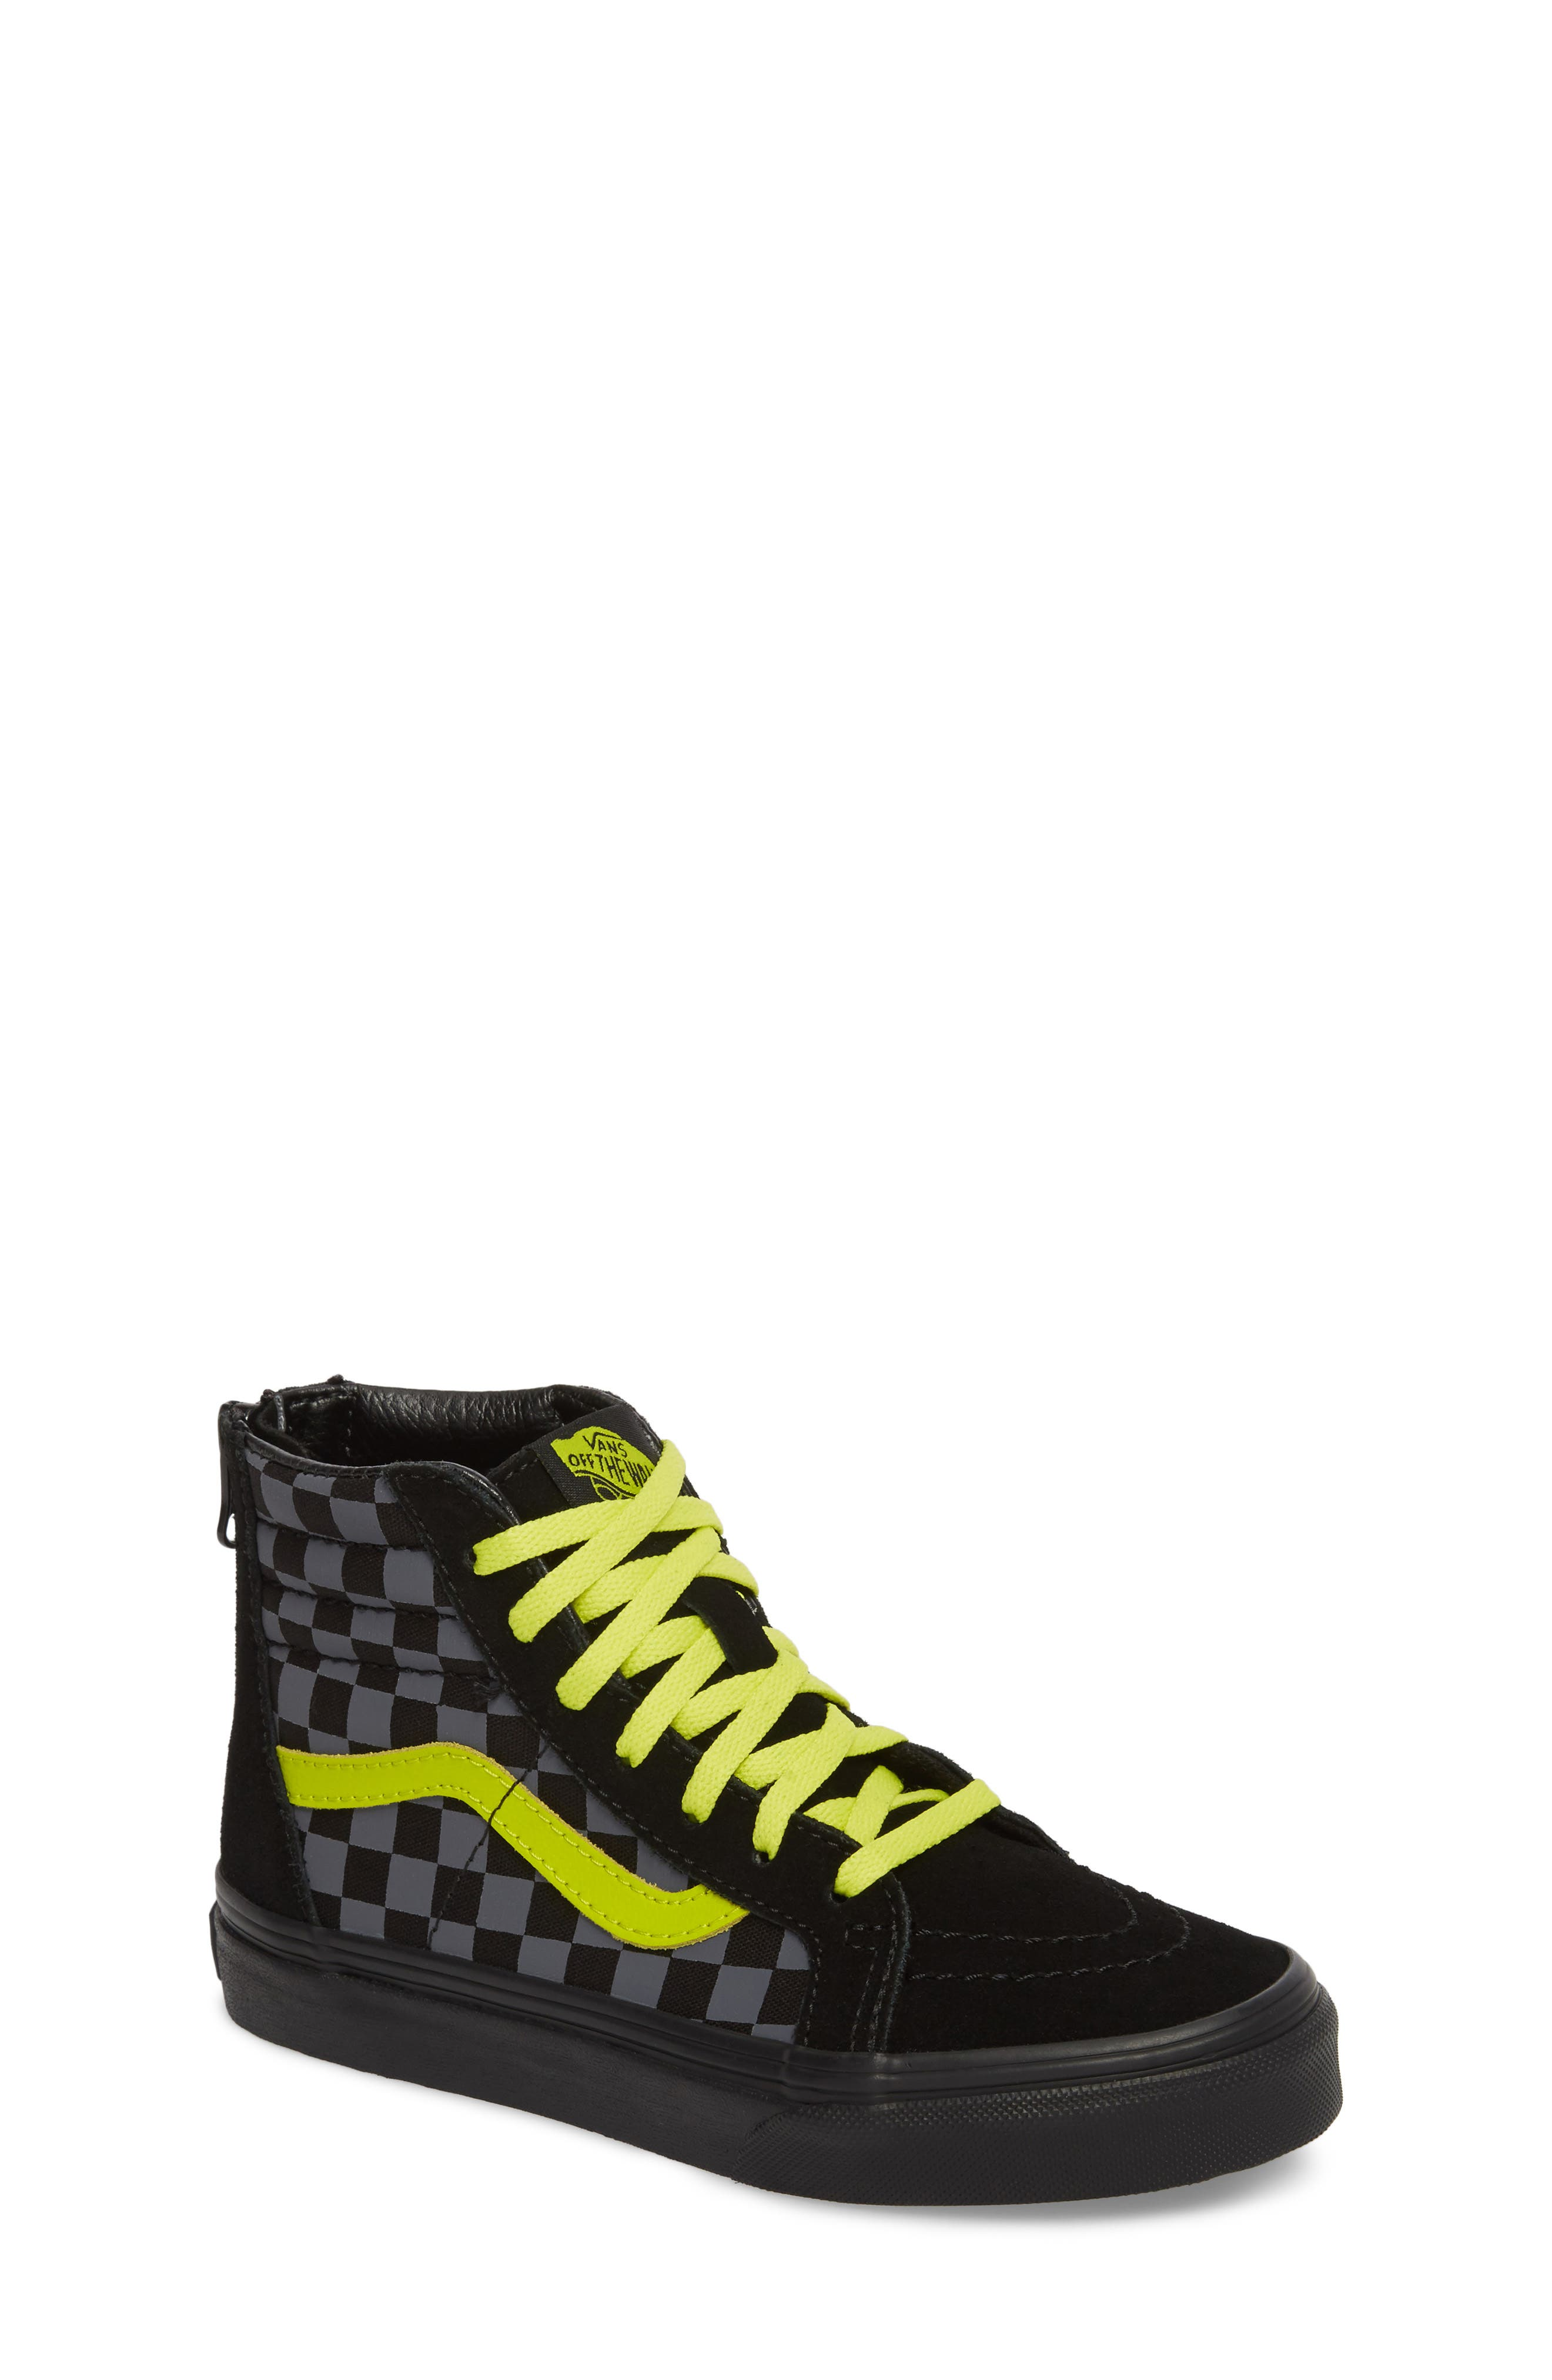 Vans Reflective Checkerboard SK8-Hi Zip Sneaker (Toddler, Little Kid & Big Kid)